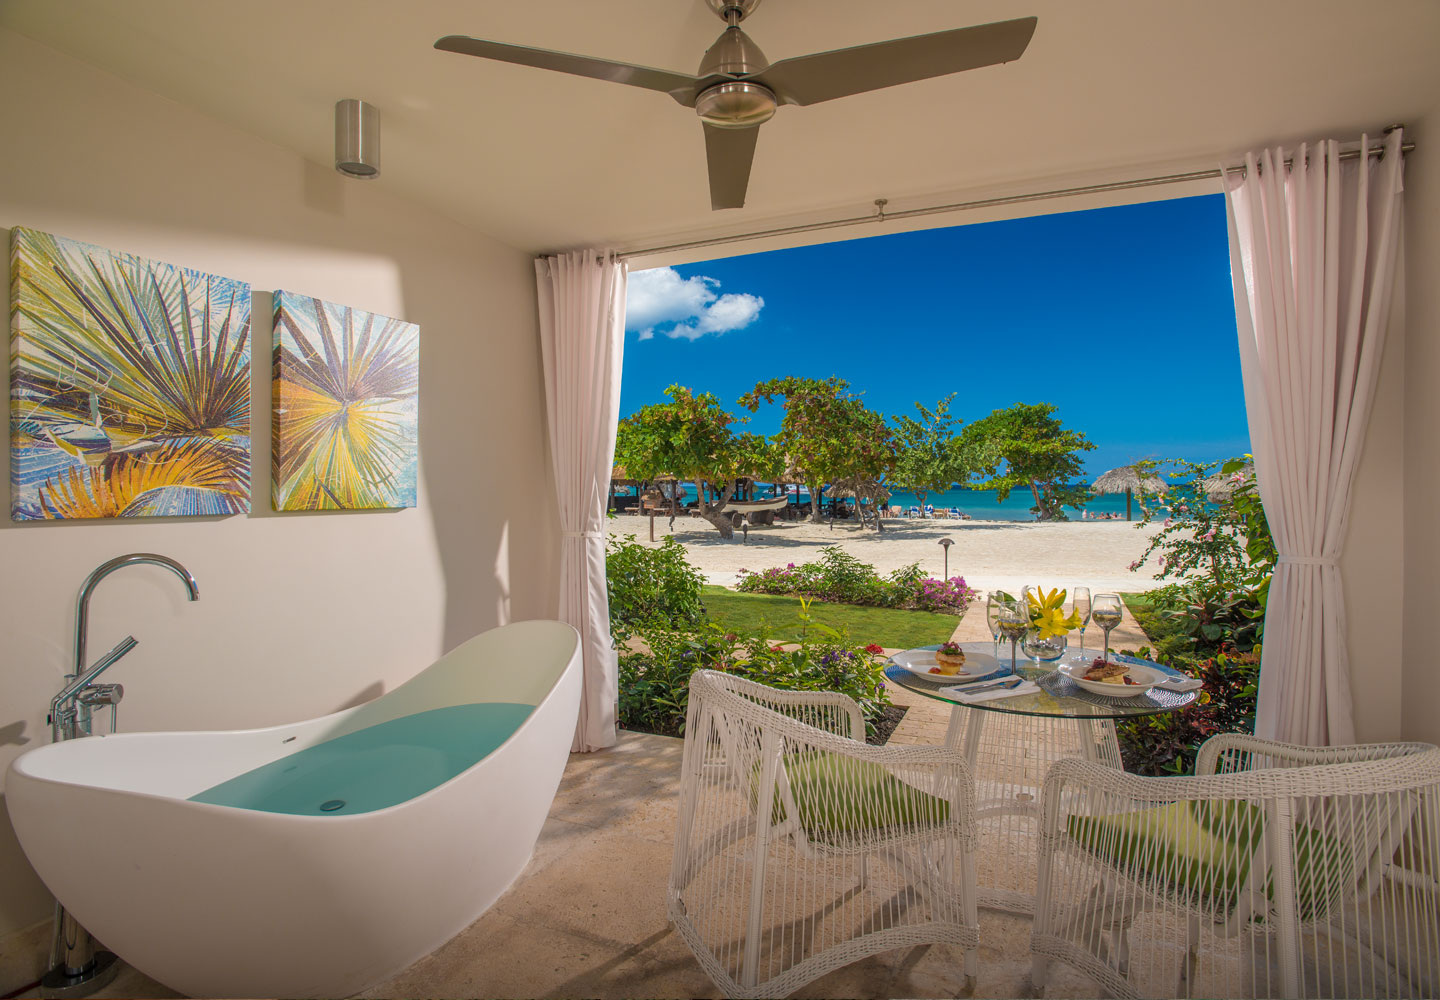 Travel Agency All-Inclusive Resort Sandals Montego Bay 077